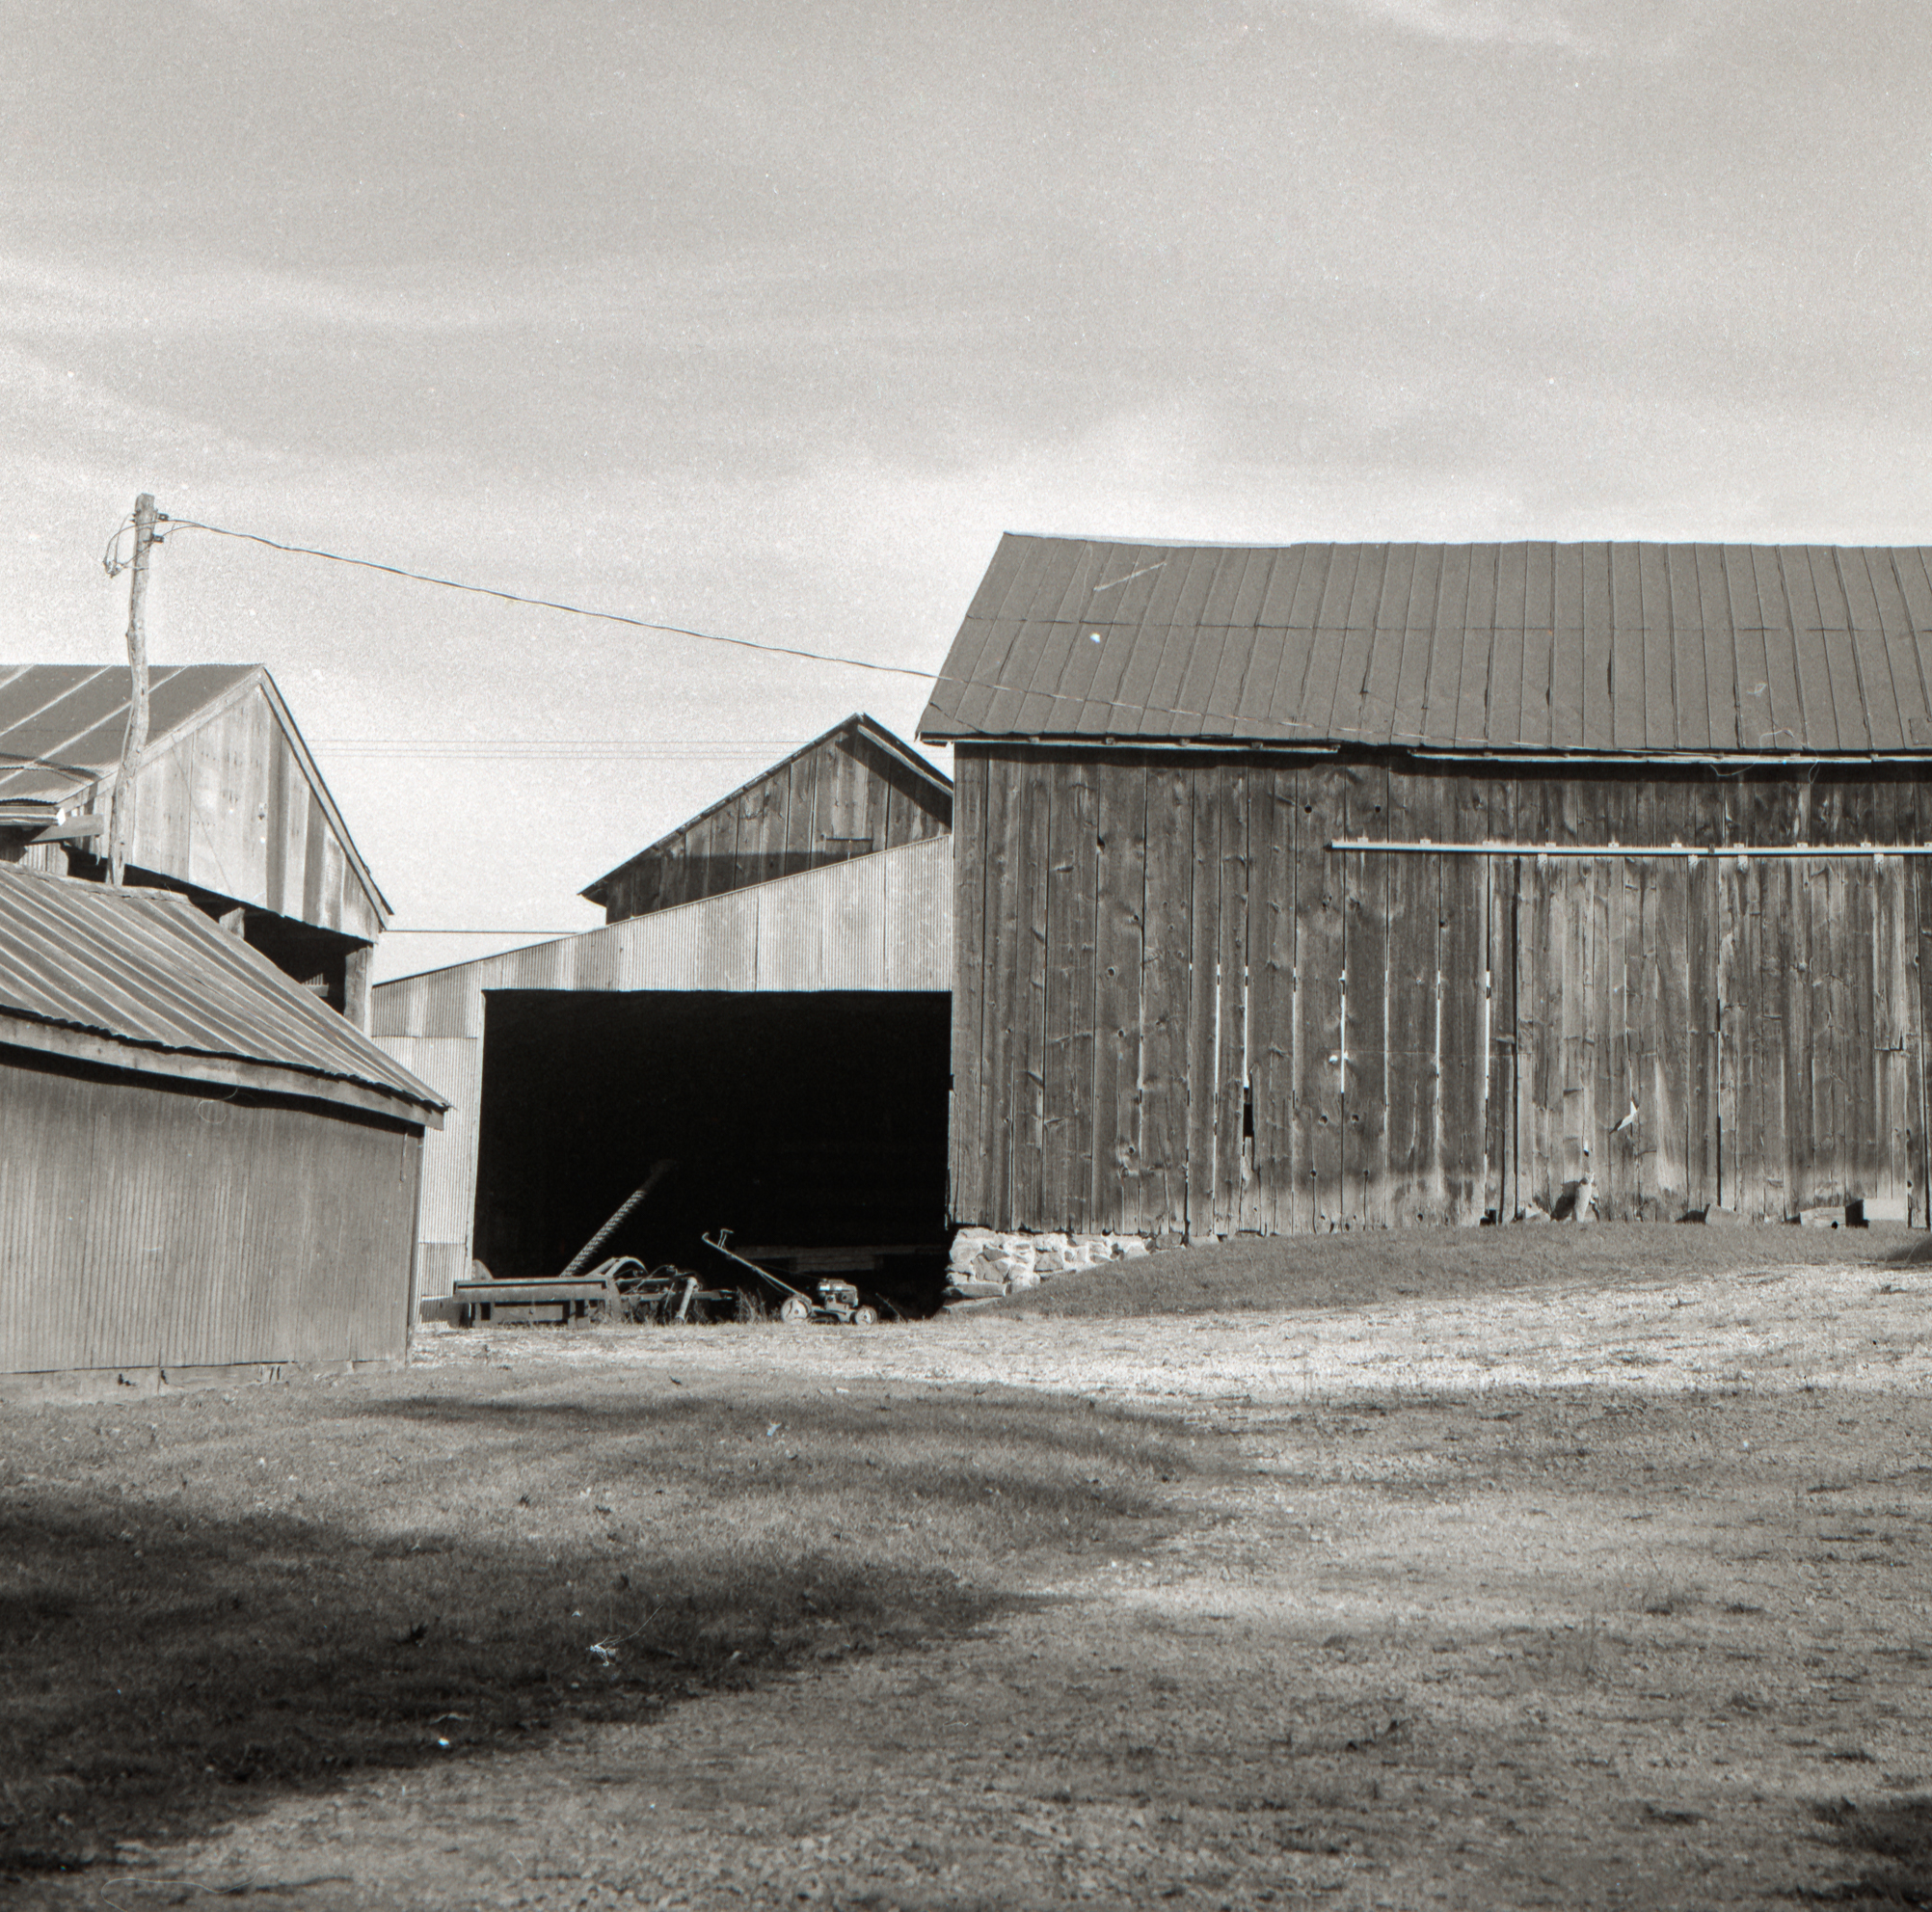 A close cluster of barns shot on Ilford FP4+